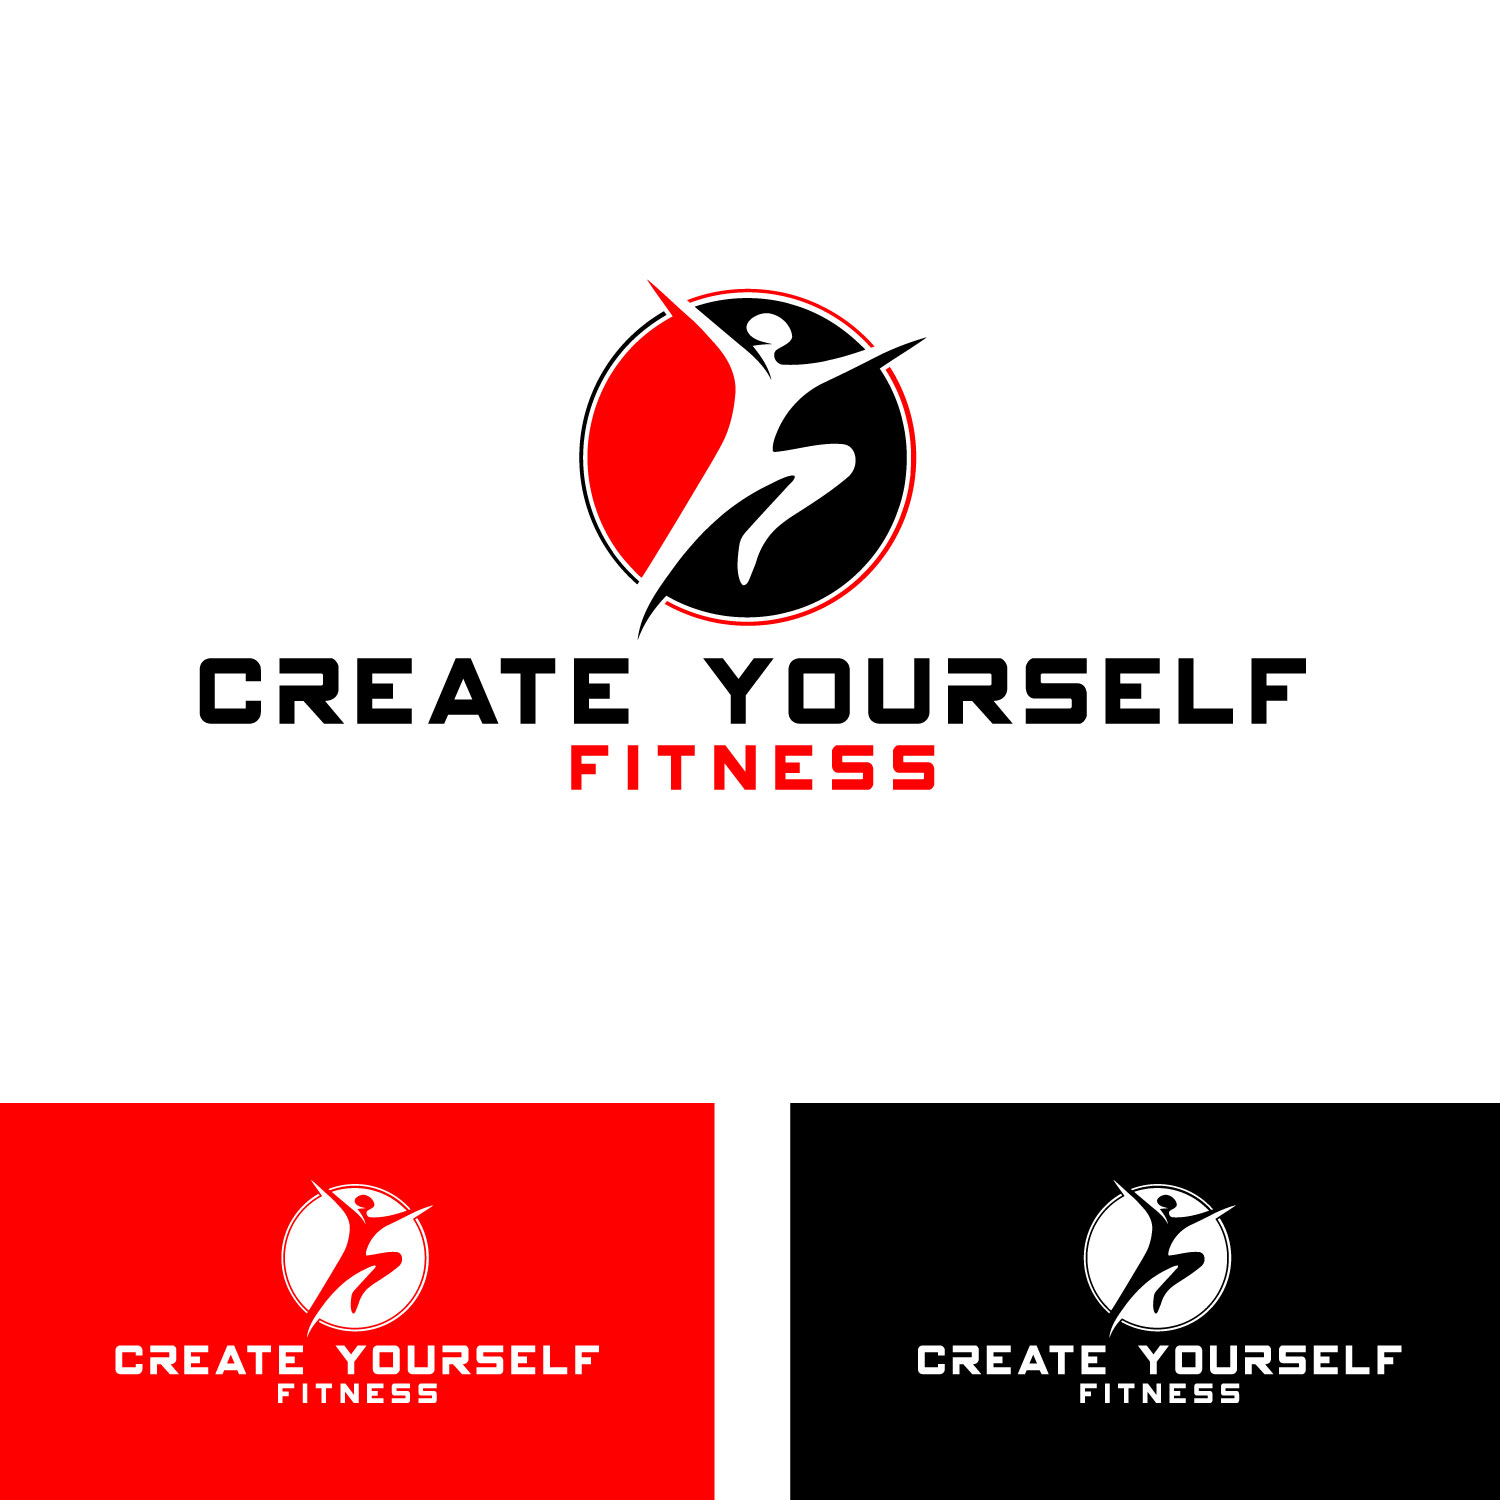 How to create a logo yourself 93